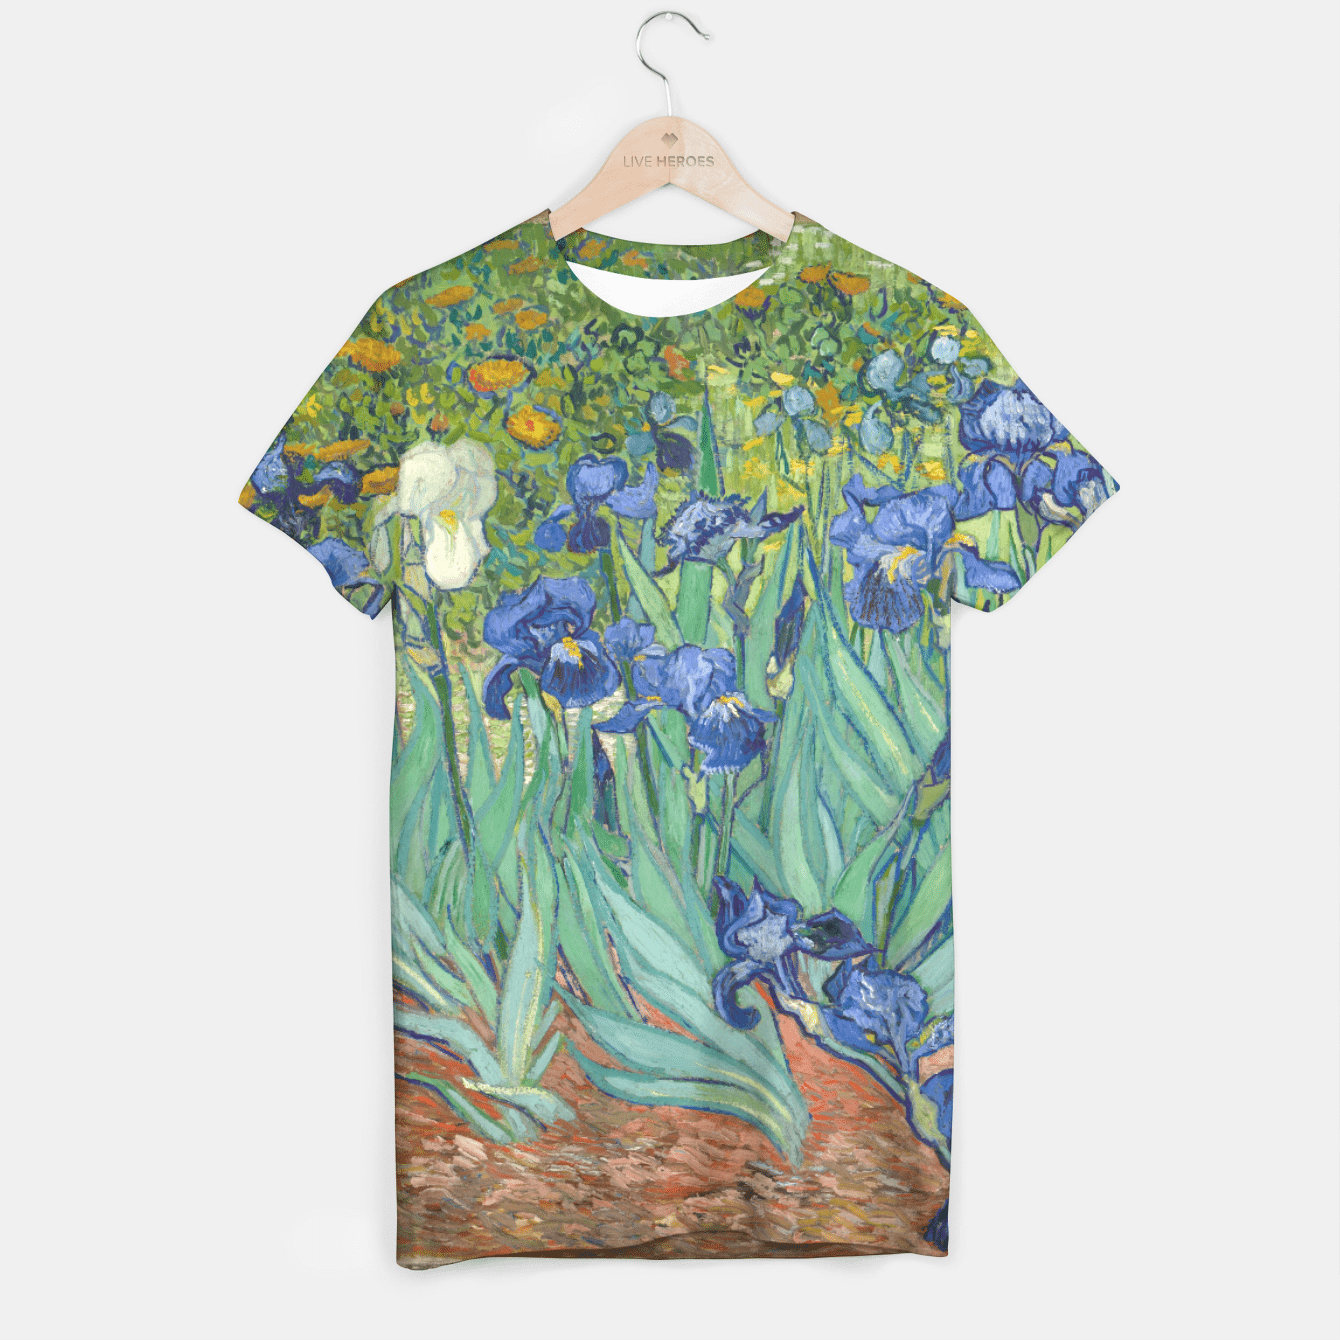 iRiSES BY ViNCENT VAN GOGH T-shirt, Live Heroes